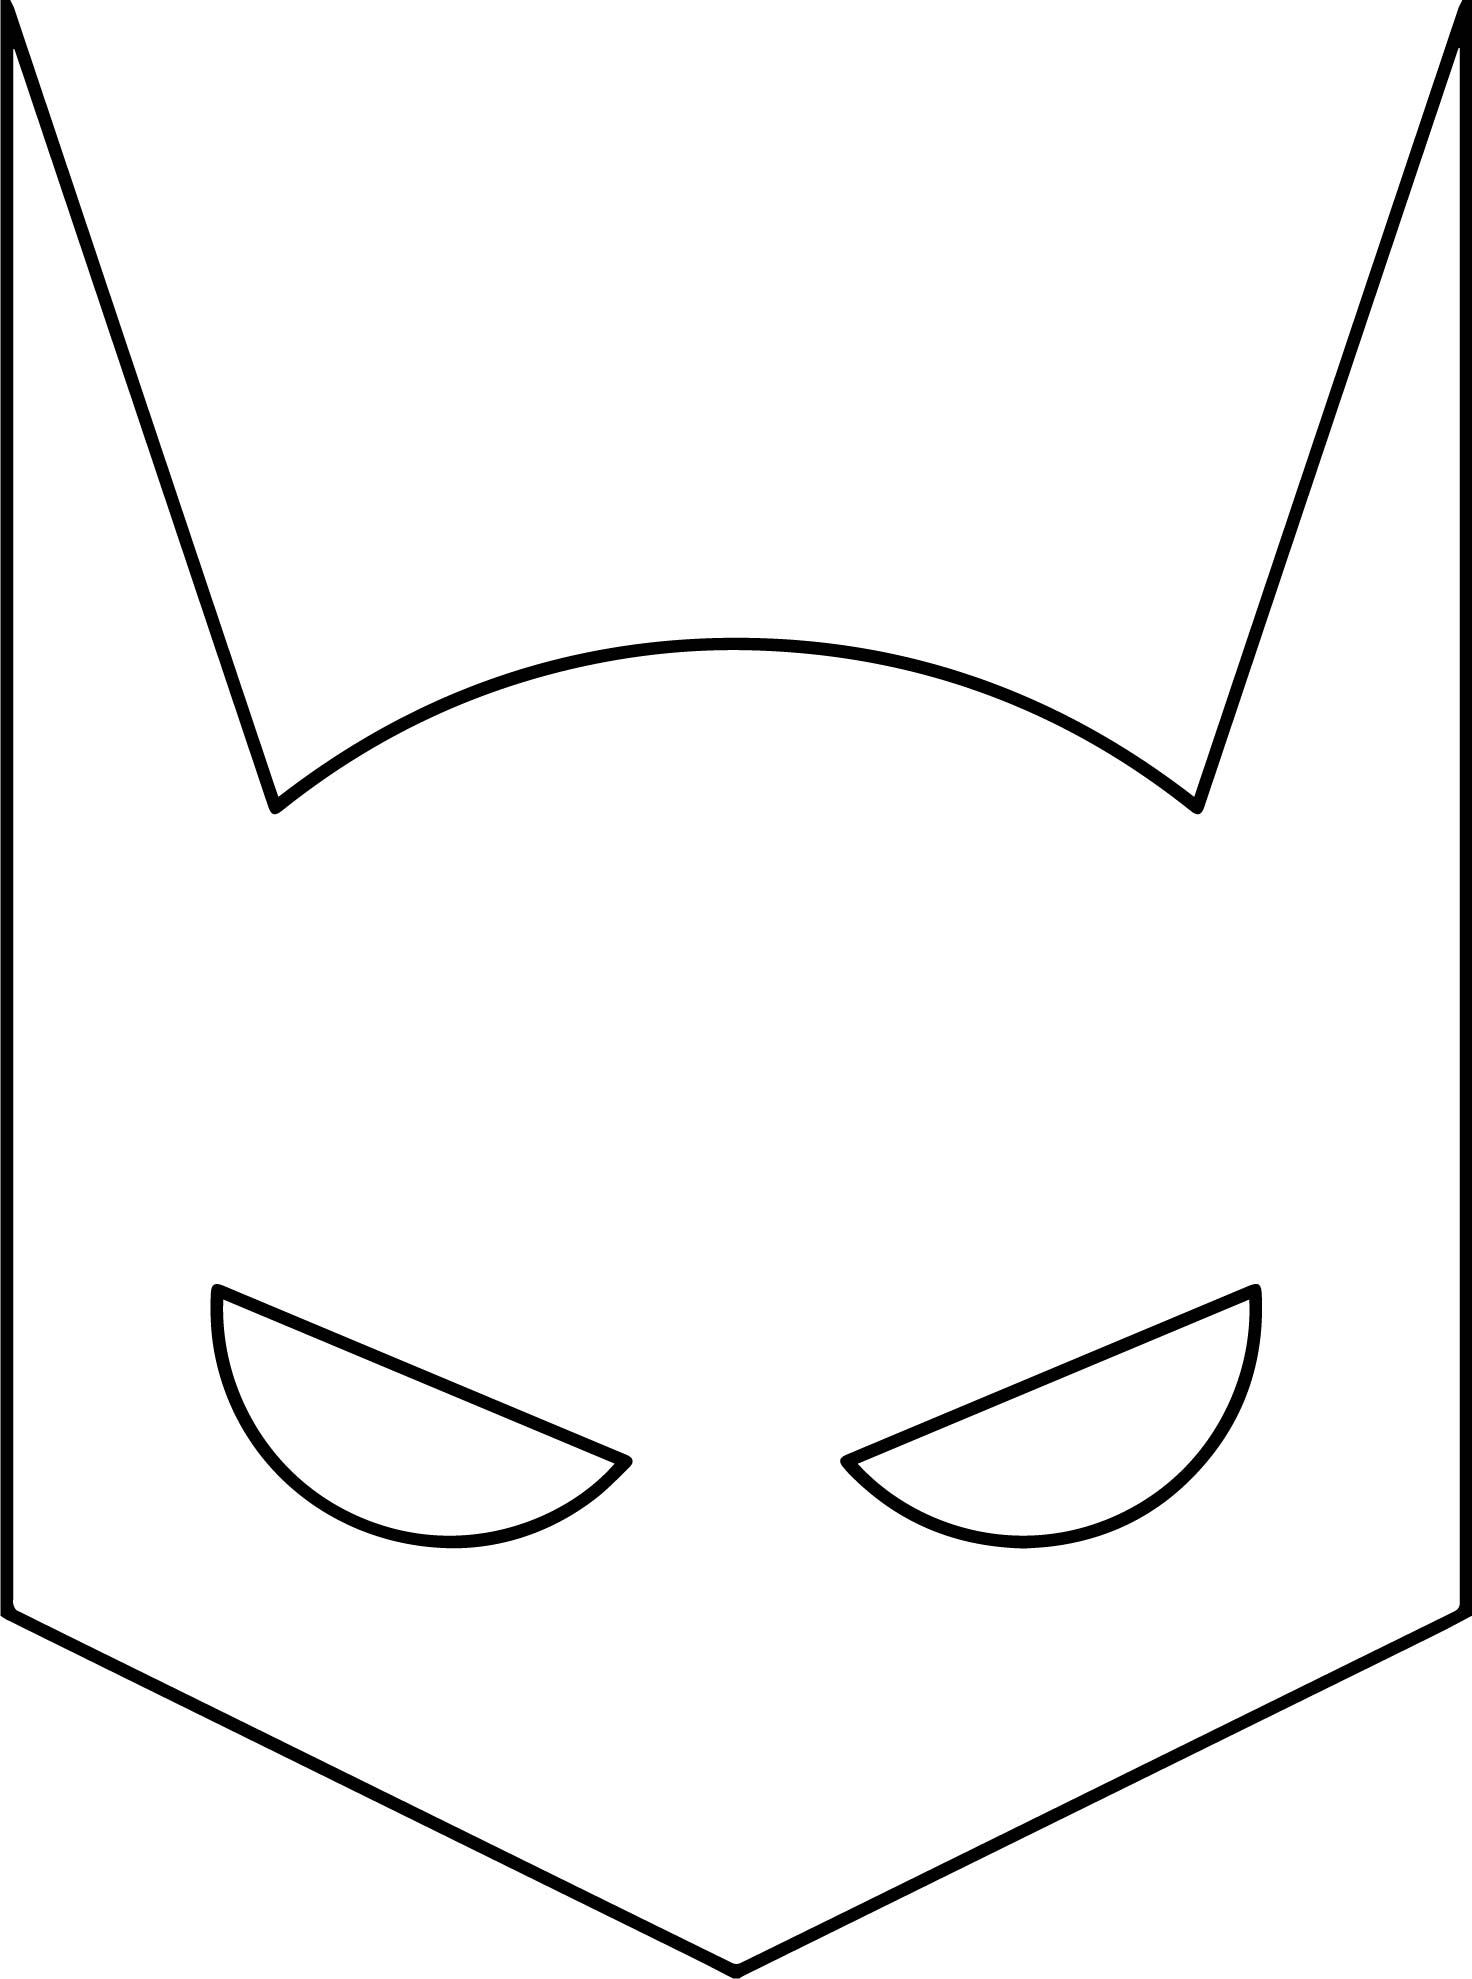 Superhero Mask Coloring Pages at GetDrawings   Free download